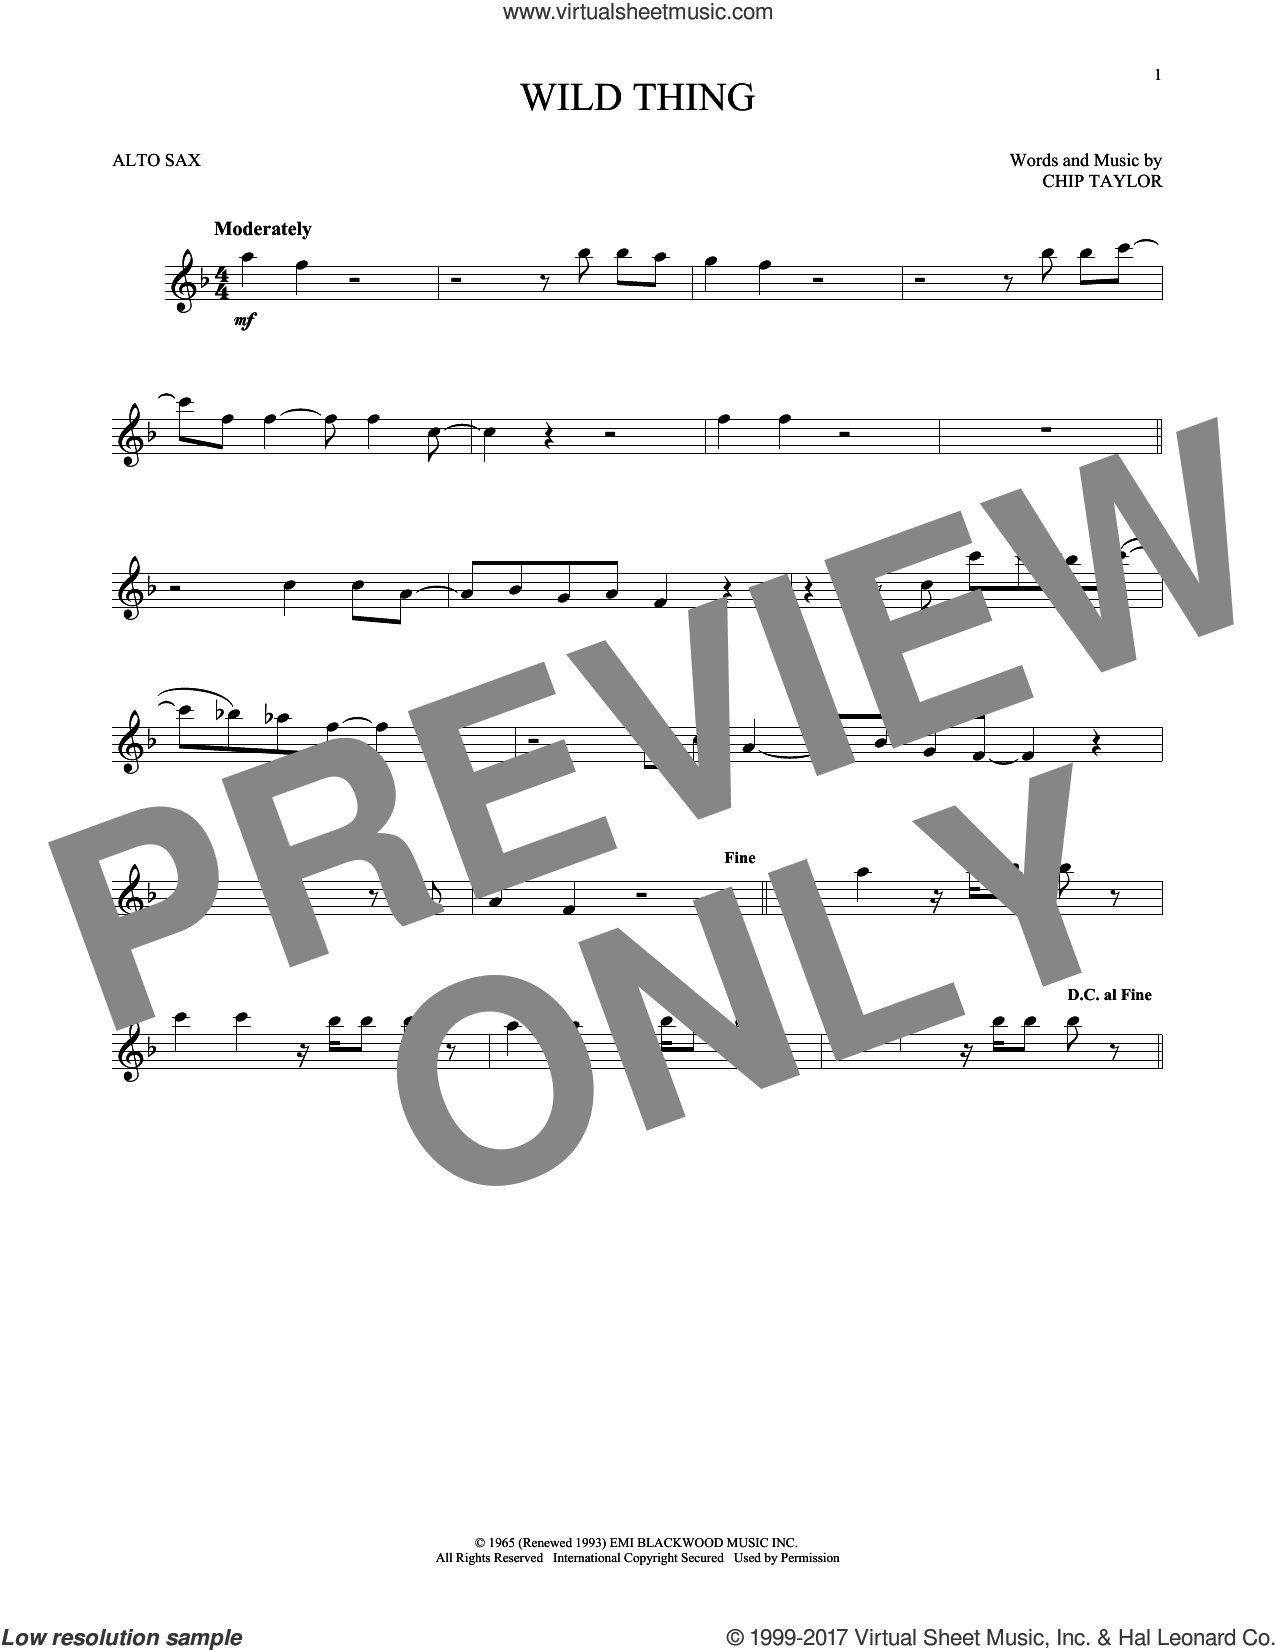 Wild Thing sheet music for alto saxophone solo by The Troggs and Chip Taylor, intermediate skill level